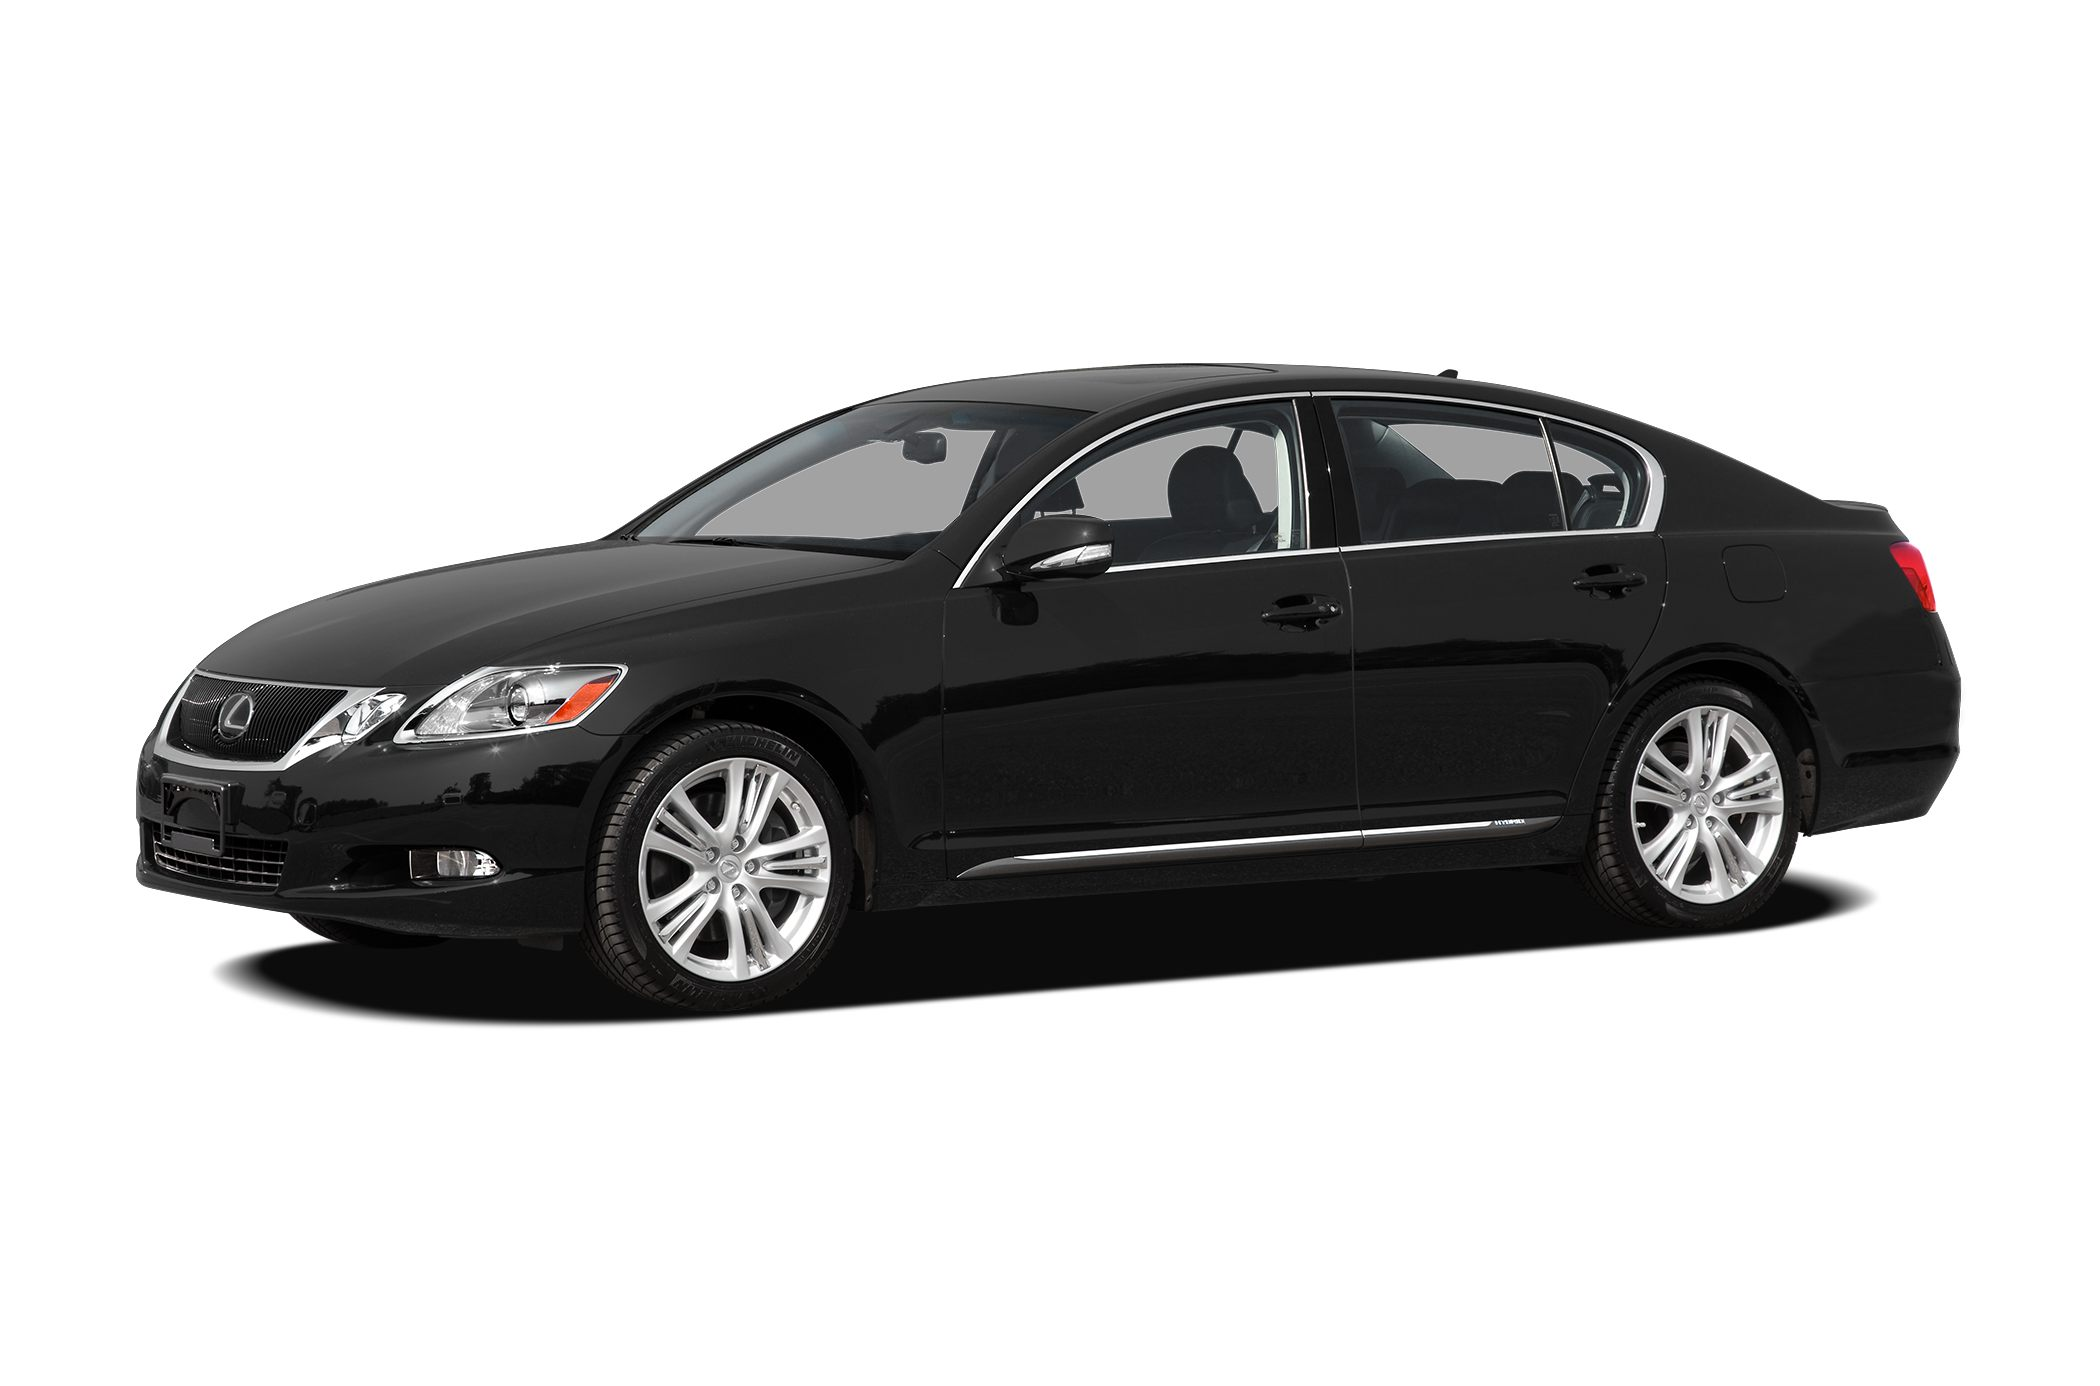 2008 Lexus GS 450h Base Excellent Condition FUEL EFFICIENT 25 MPG Hwy22 MPG City PRICED TO MOV